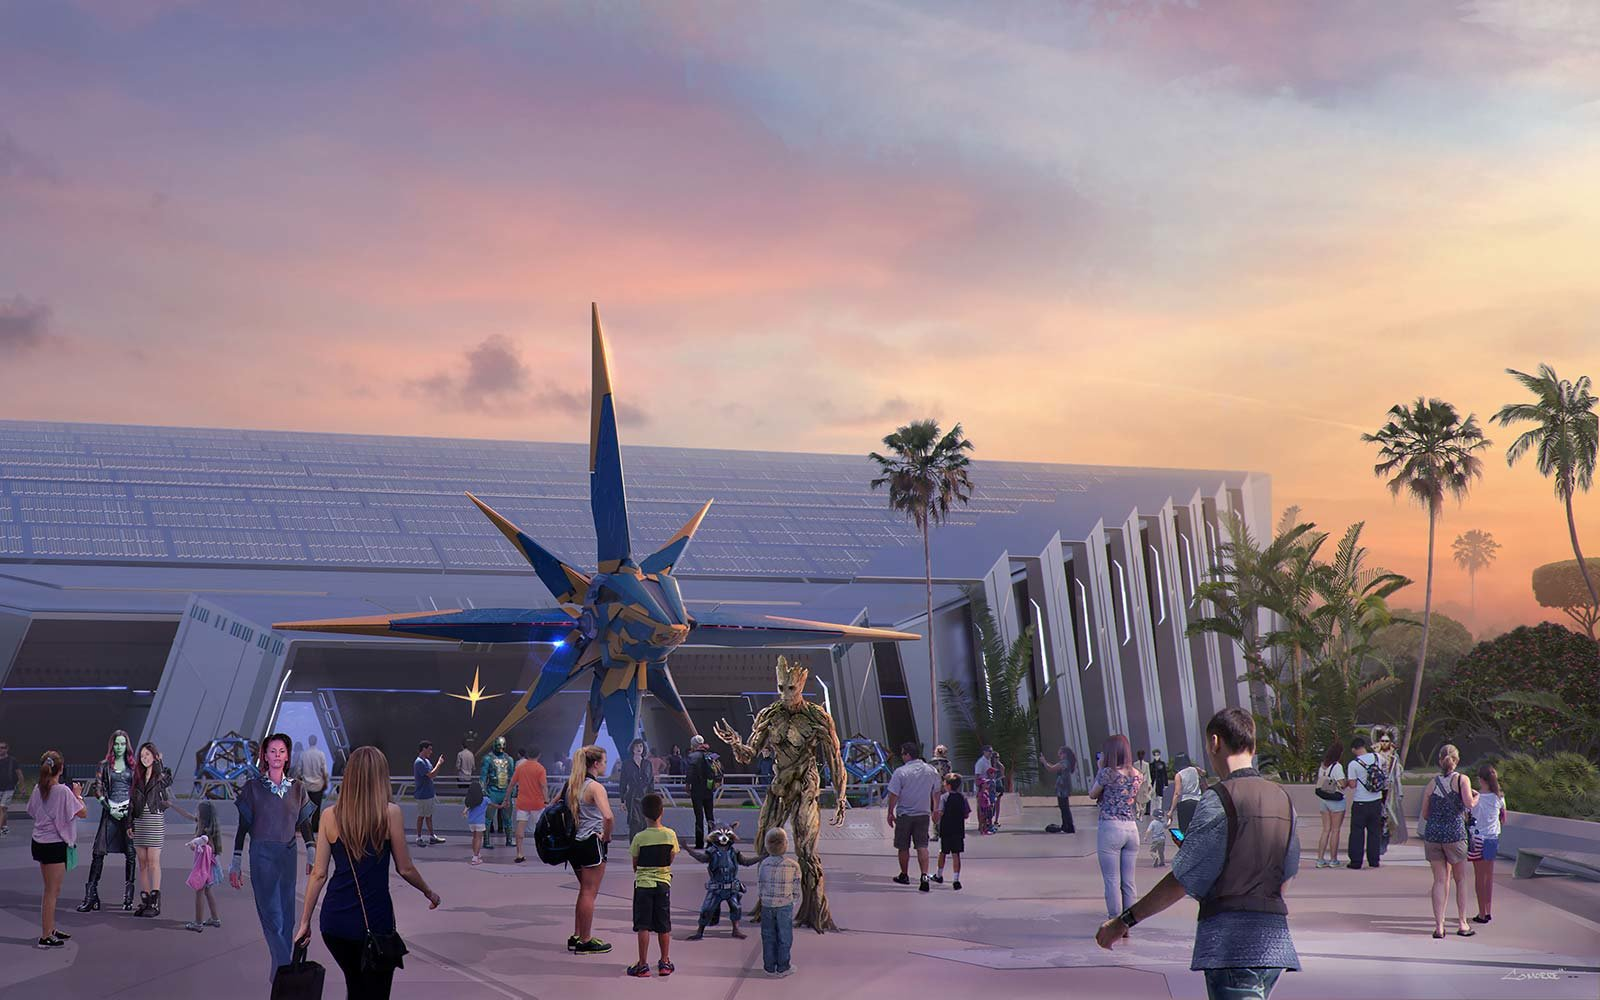 GUARDIANS OF THE GALAXY ATTRACTION COMING TO EPCOT Disney Marvel Roller Coaster